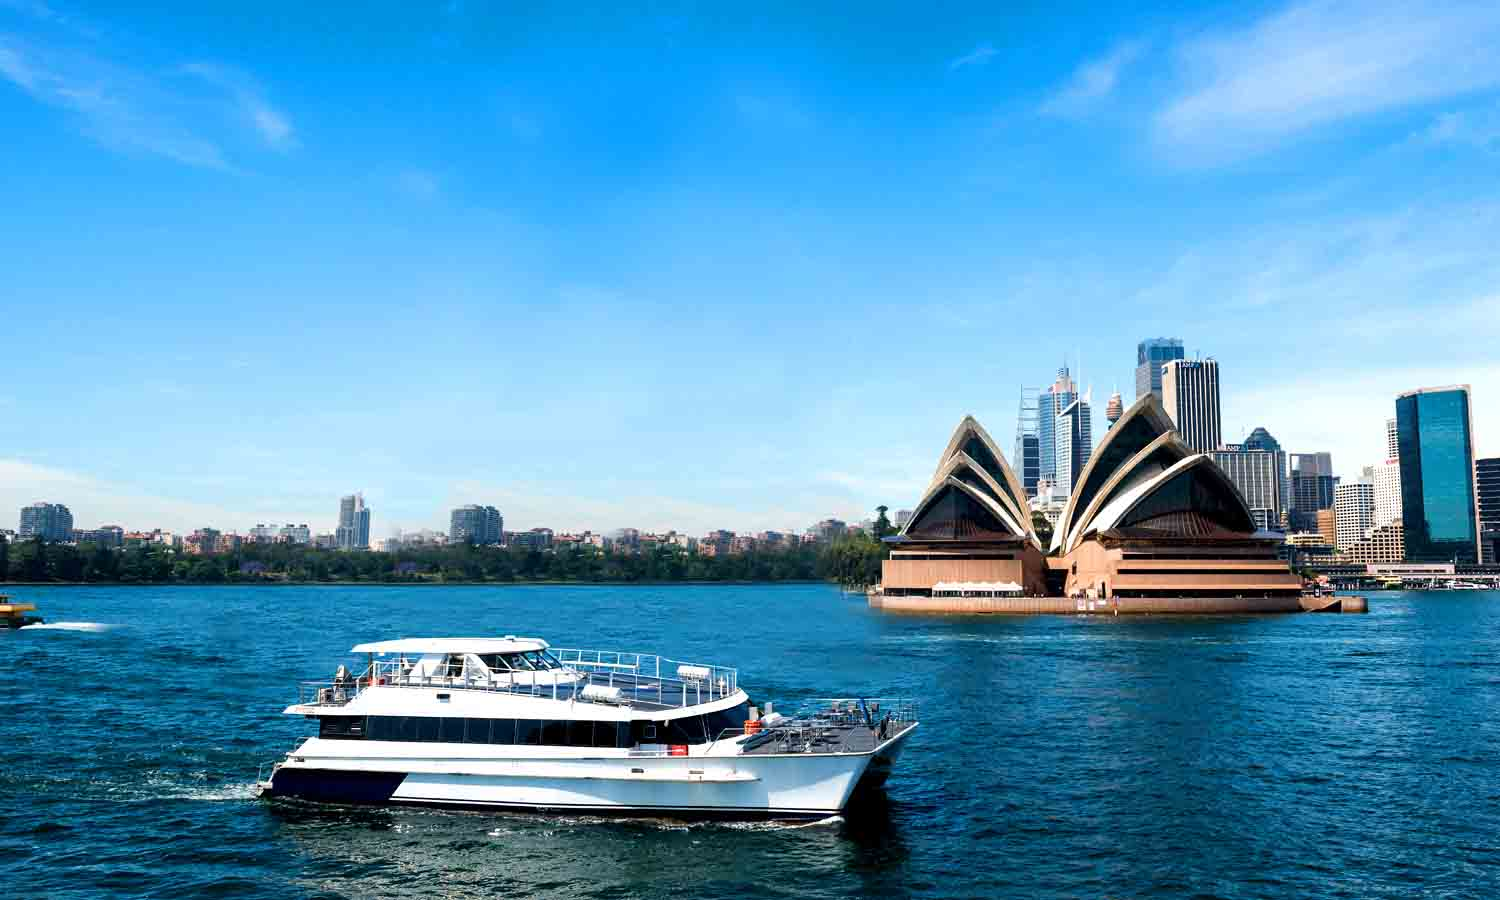 Harbourside Cruises – Venues with a View